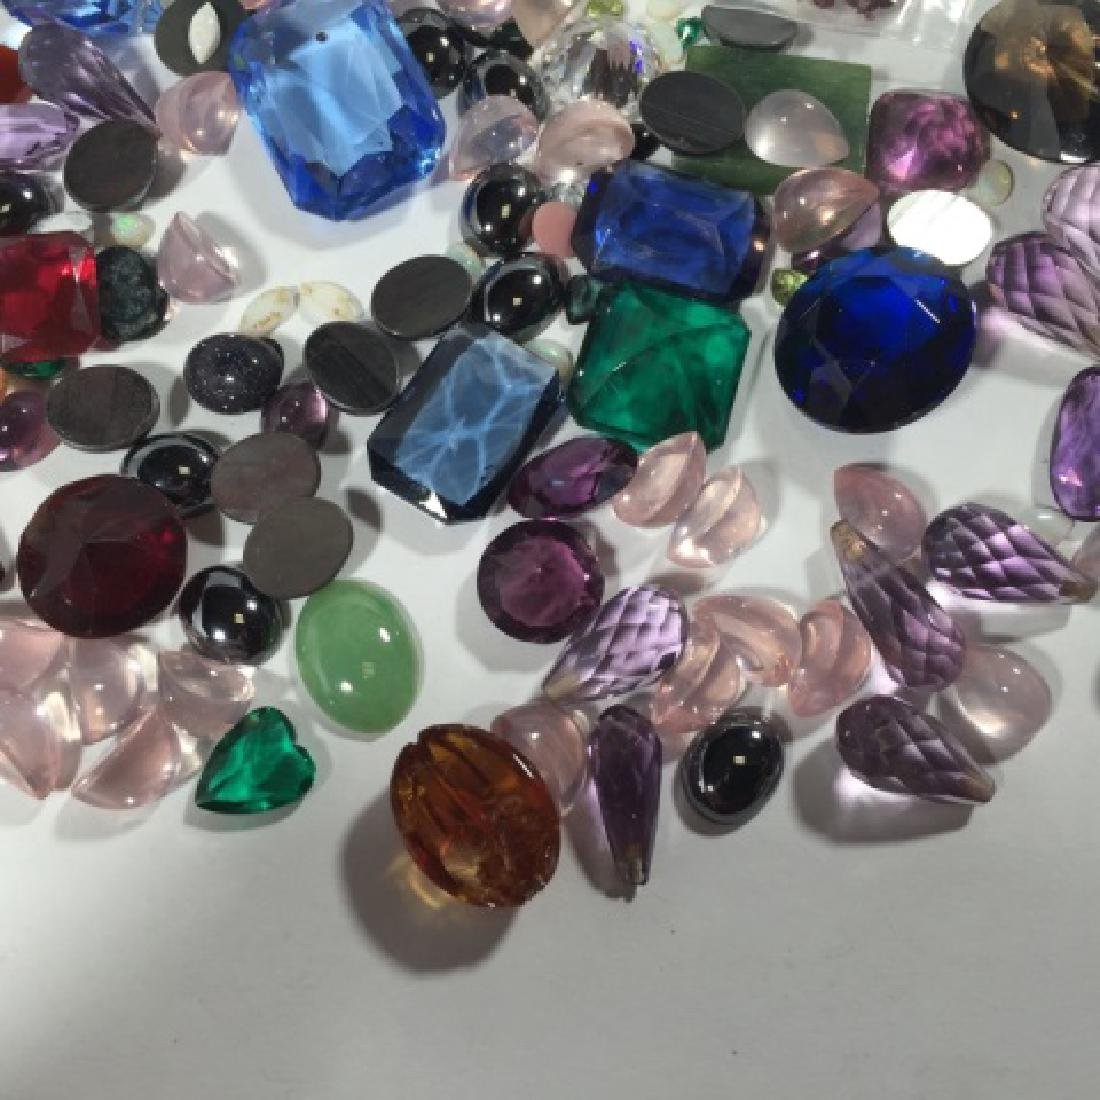 Assorted Loose Stones - Opal, Ruby, Amethyst Etc - 7